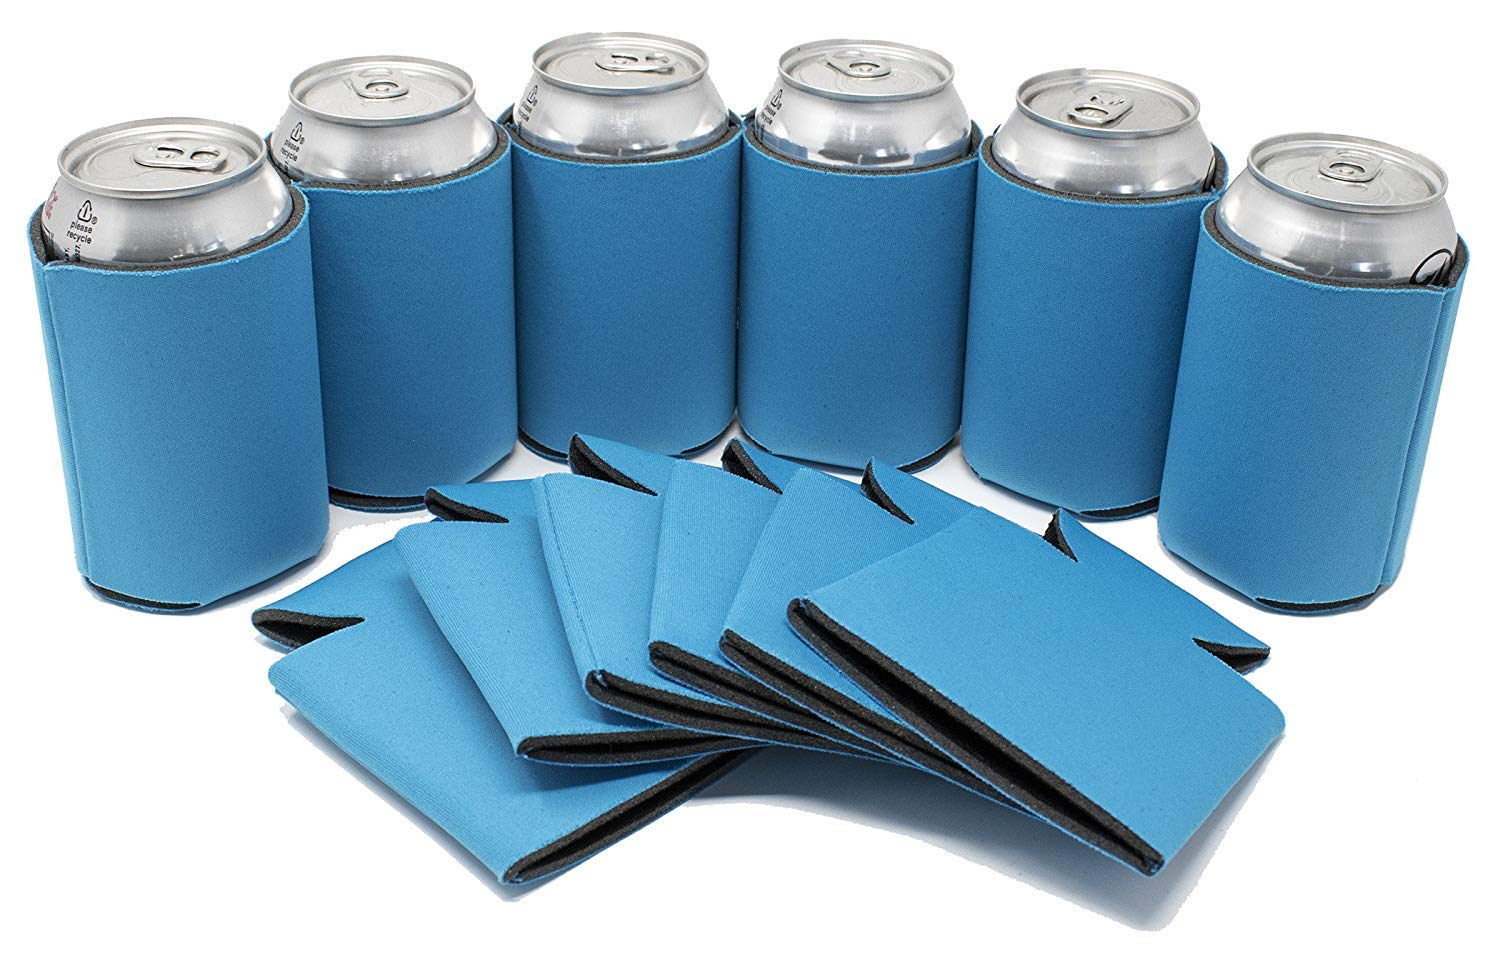 TahoeBay 25 Blank Beer Can Coolers, Plain Bulk Collapsible Soda Cover Coolies, DIY Personalized Sublimation Sleeves for Weddings, Bachelorette Parties, Funny HTV Party Favors (Neon Blue, 25)